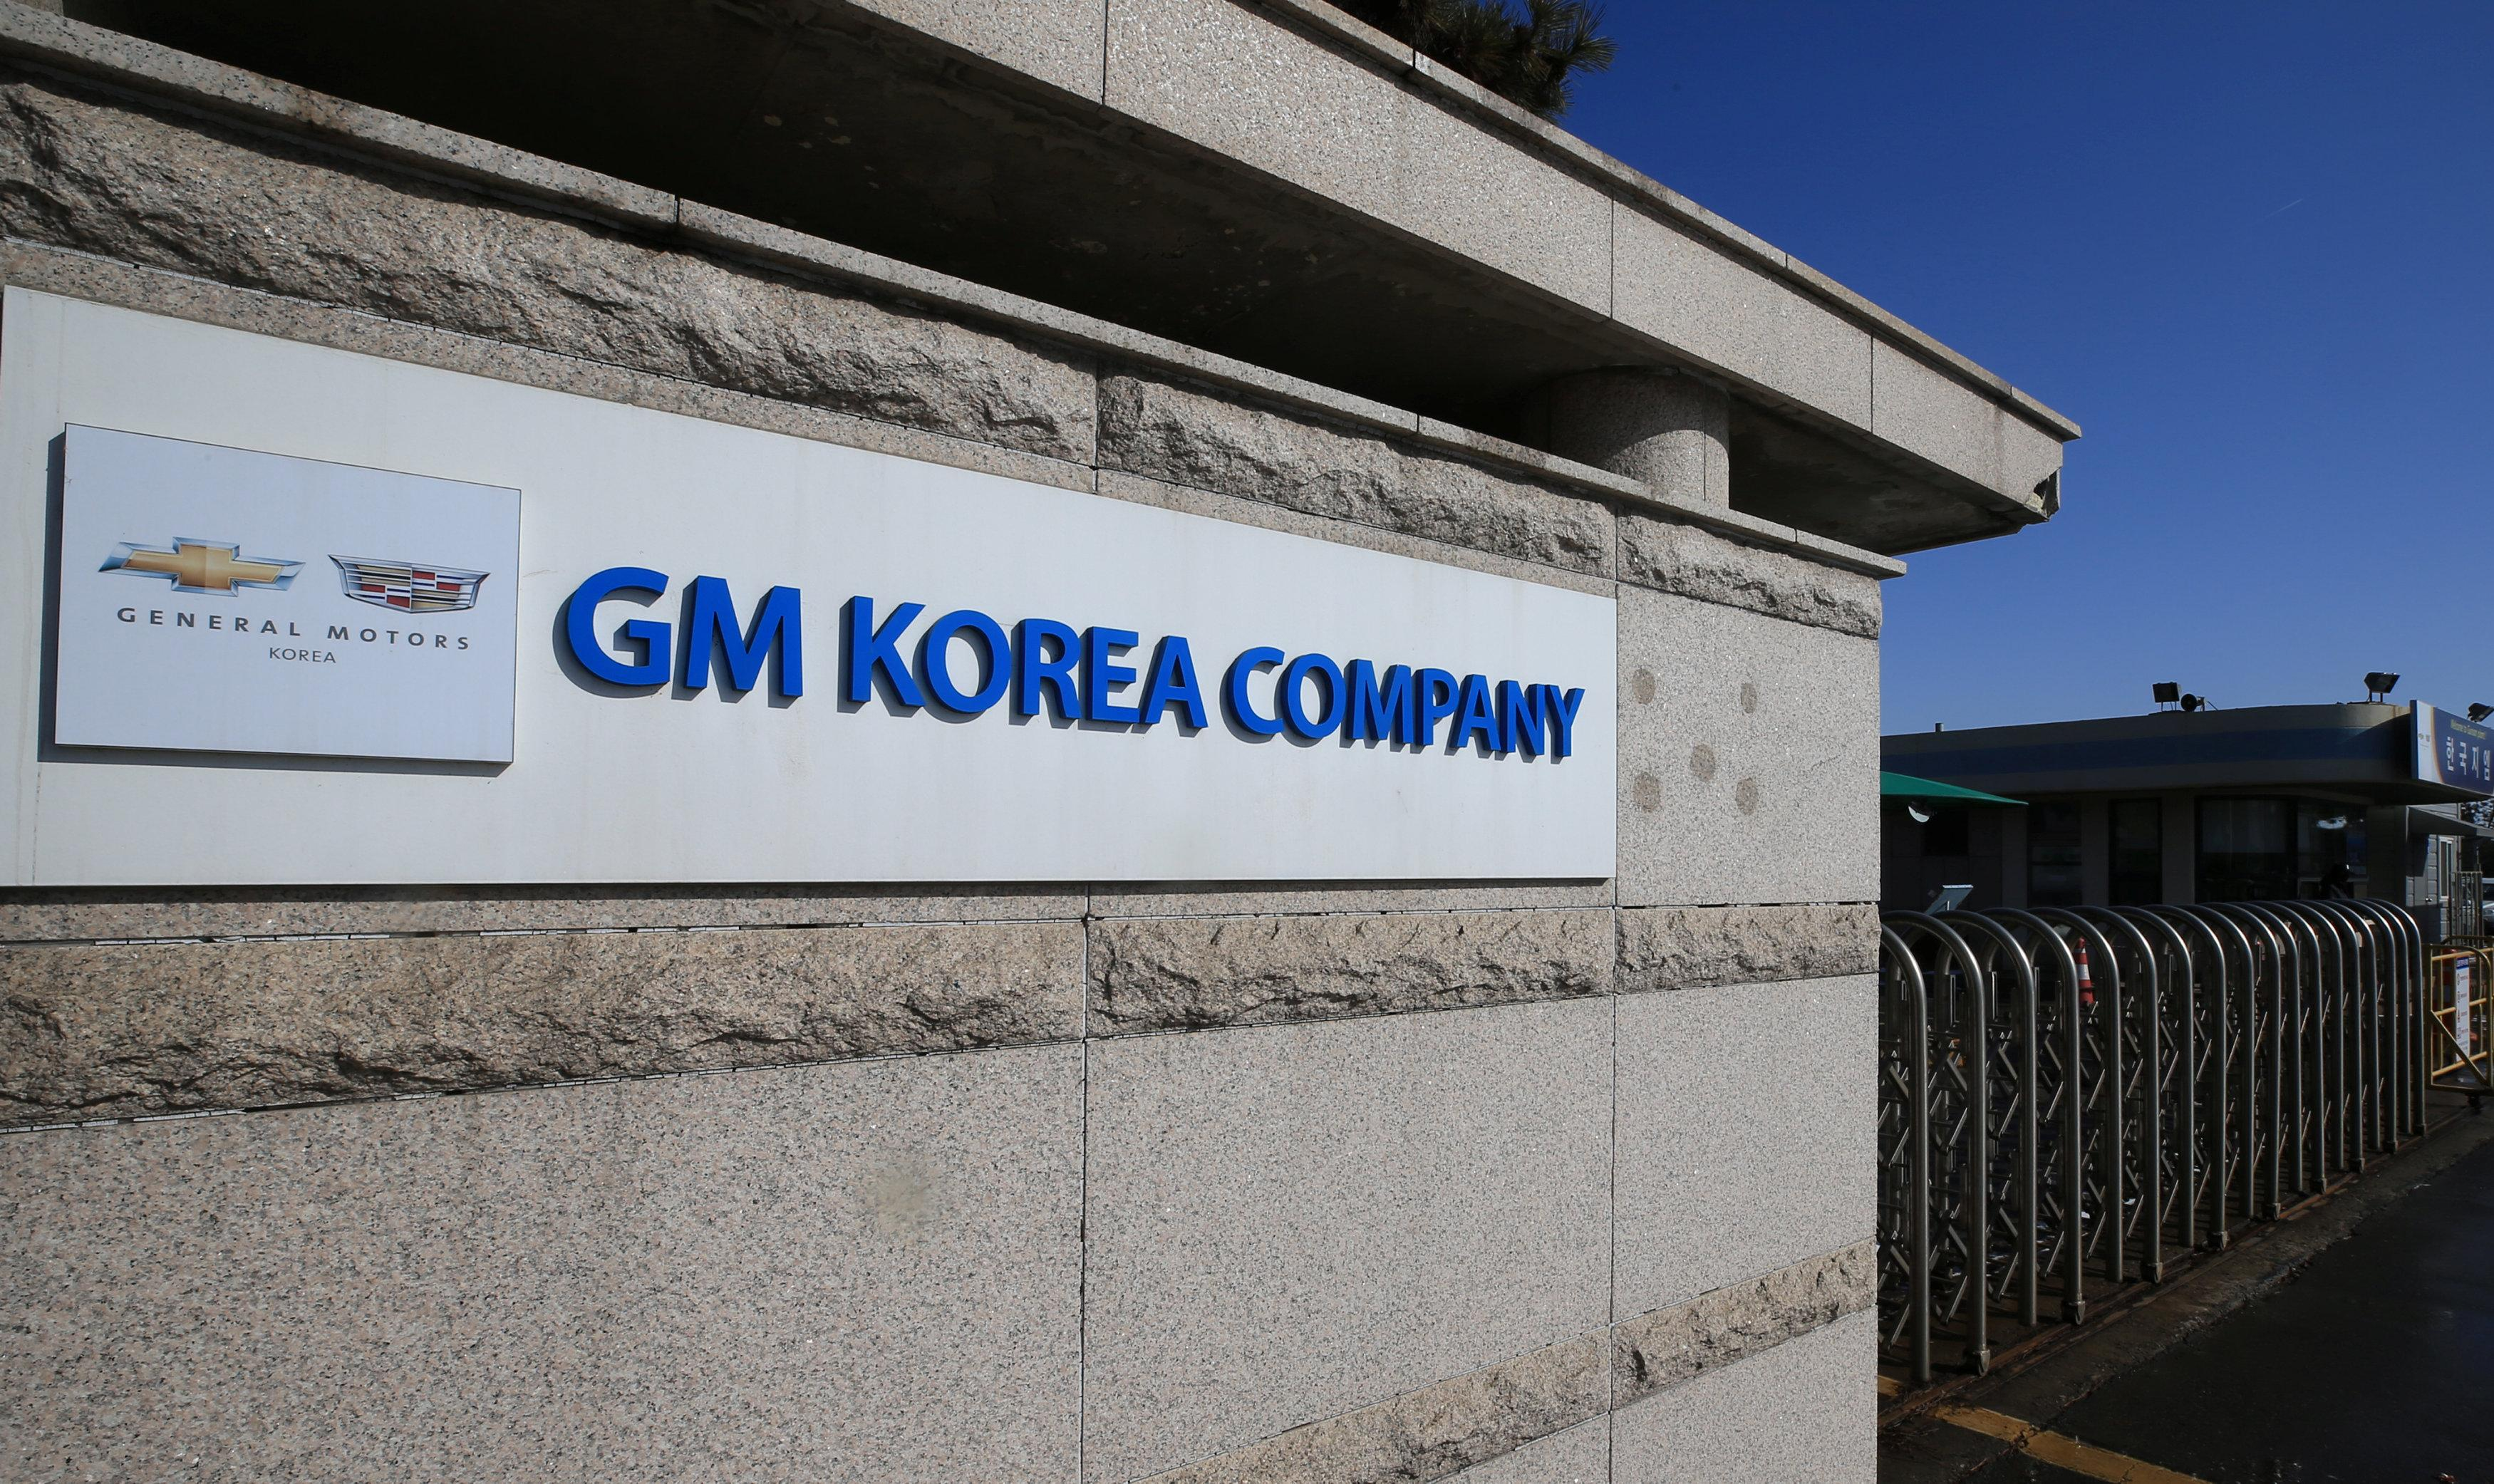 The main gate to GM Korea's Gunsan factory is seen in Gunsan, South Korea February 13, 2018. Picture taken February 13, 2018. Yonhap via